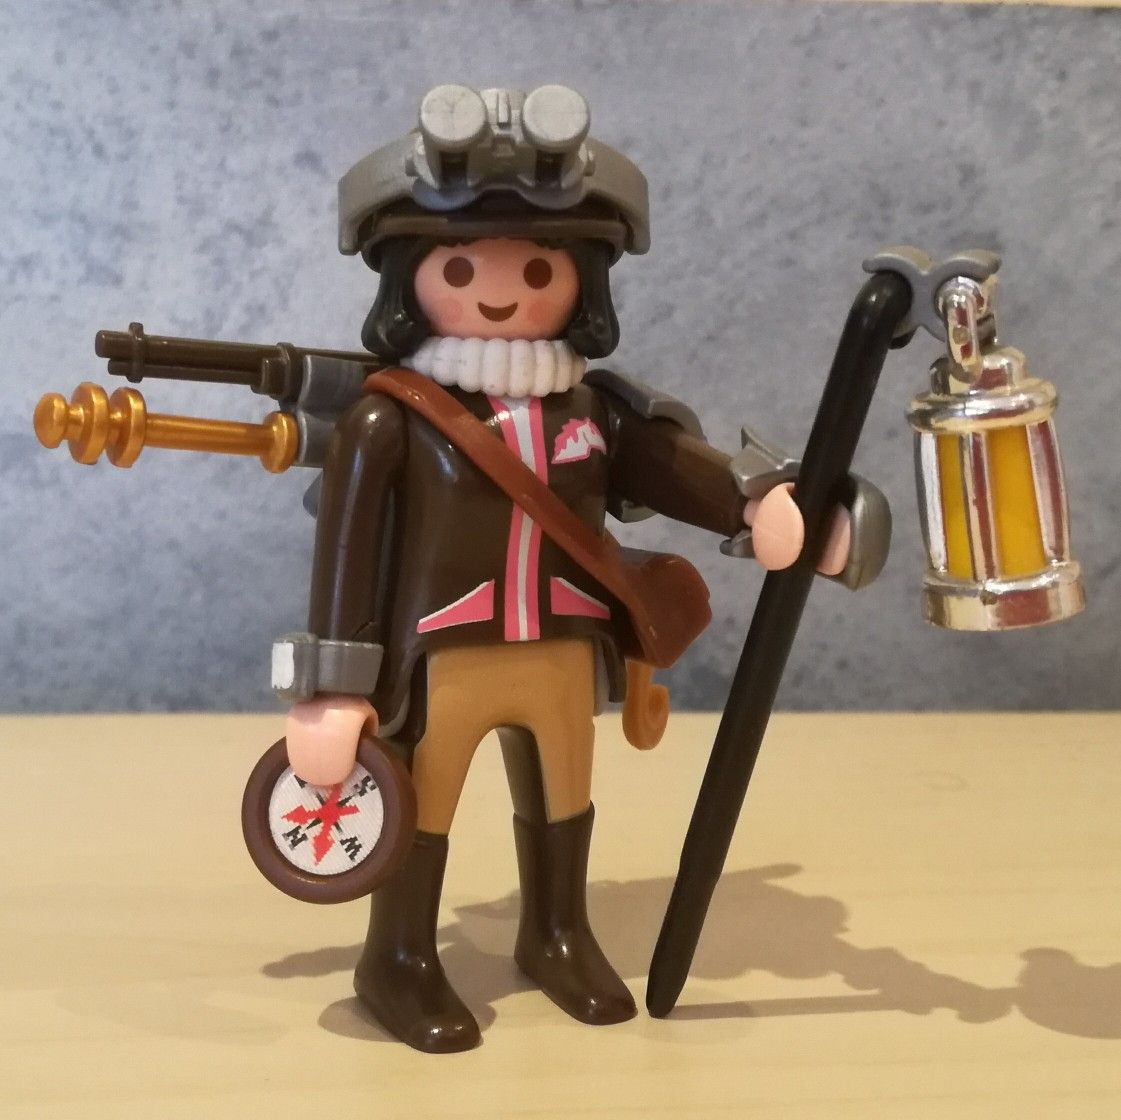 Playmobil Steampunk Playmobil Steampunk Pinterest Playmobil  # Muebles Oeste Ciudadela